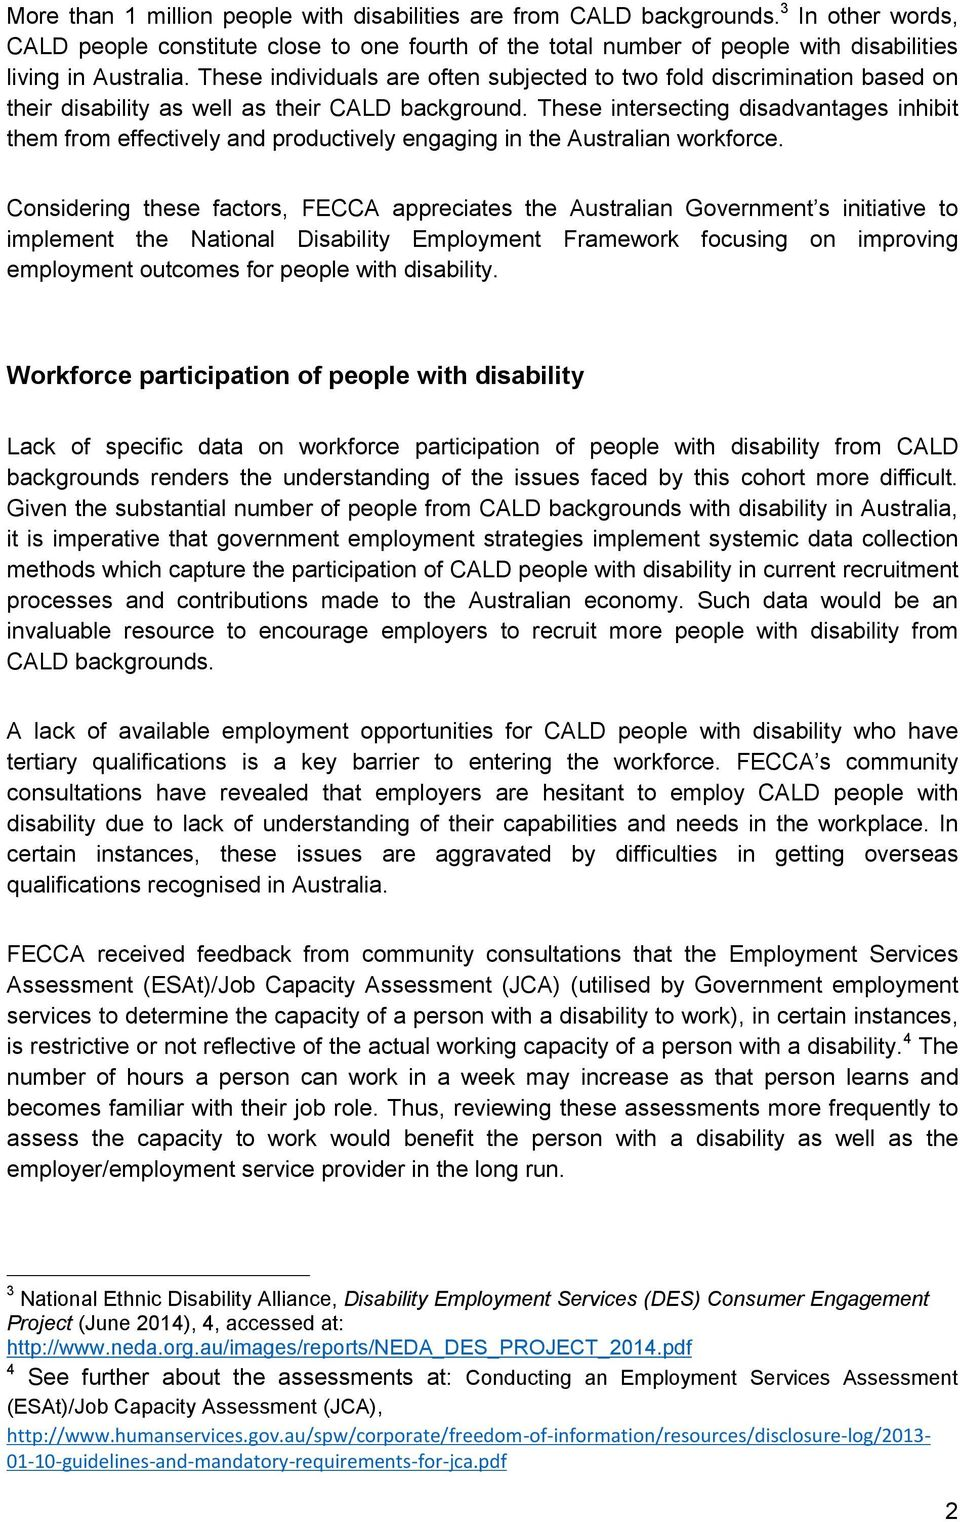 These individuals are often subjected to two fold discrimination based on their disability as well as their CALD background.